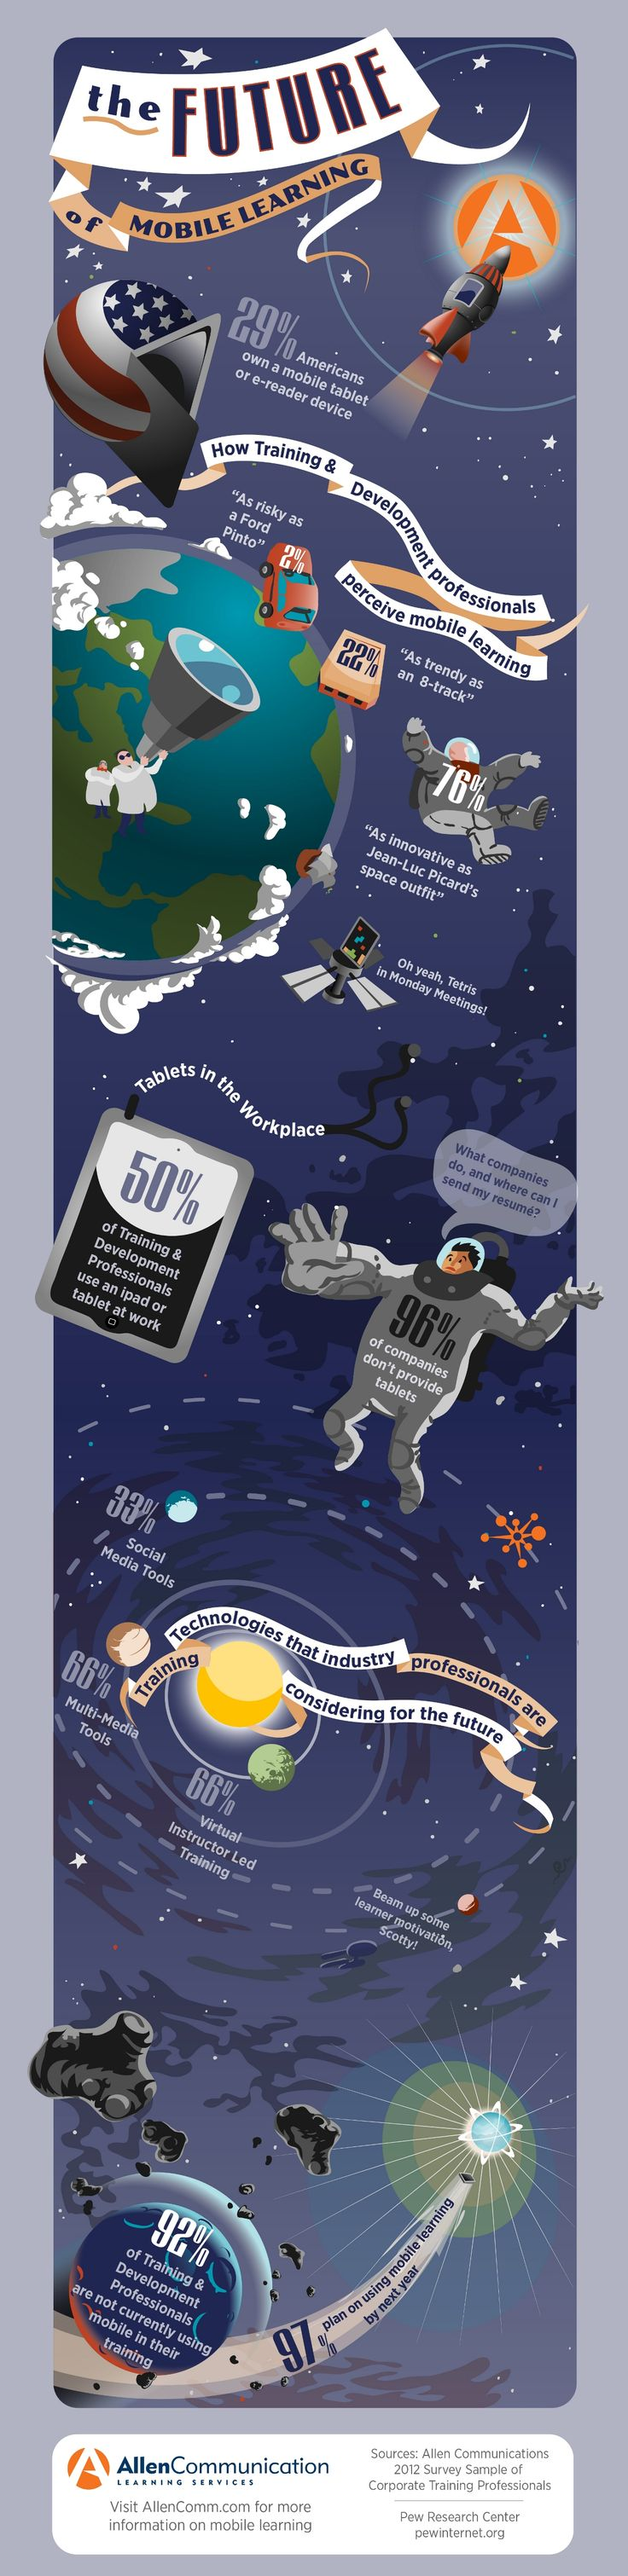 Infographic - The Future of Mobile Learning